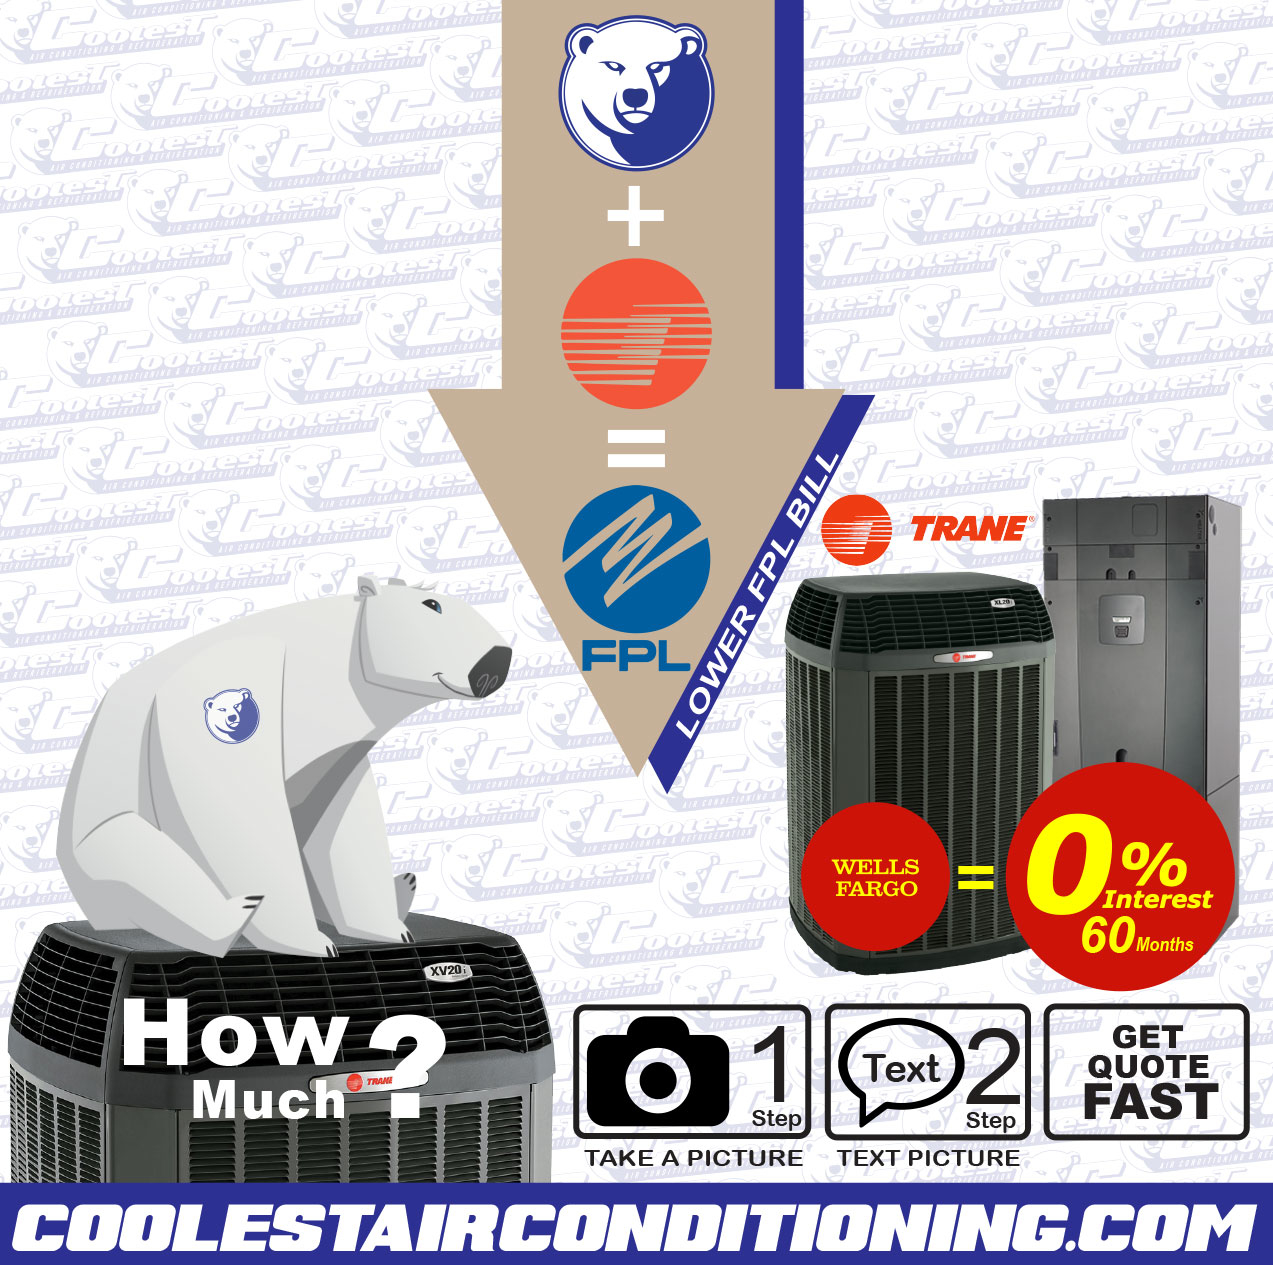 coolest air conditioning & refrigeration